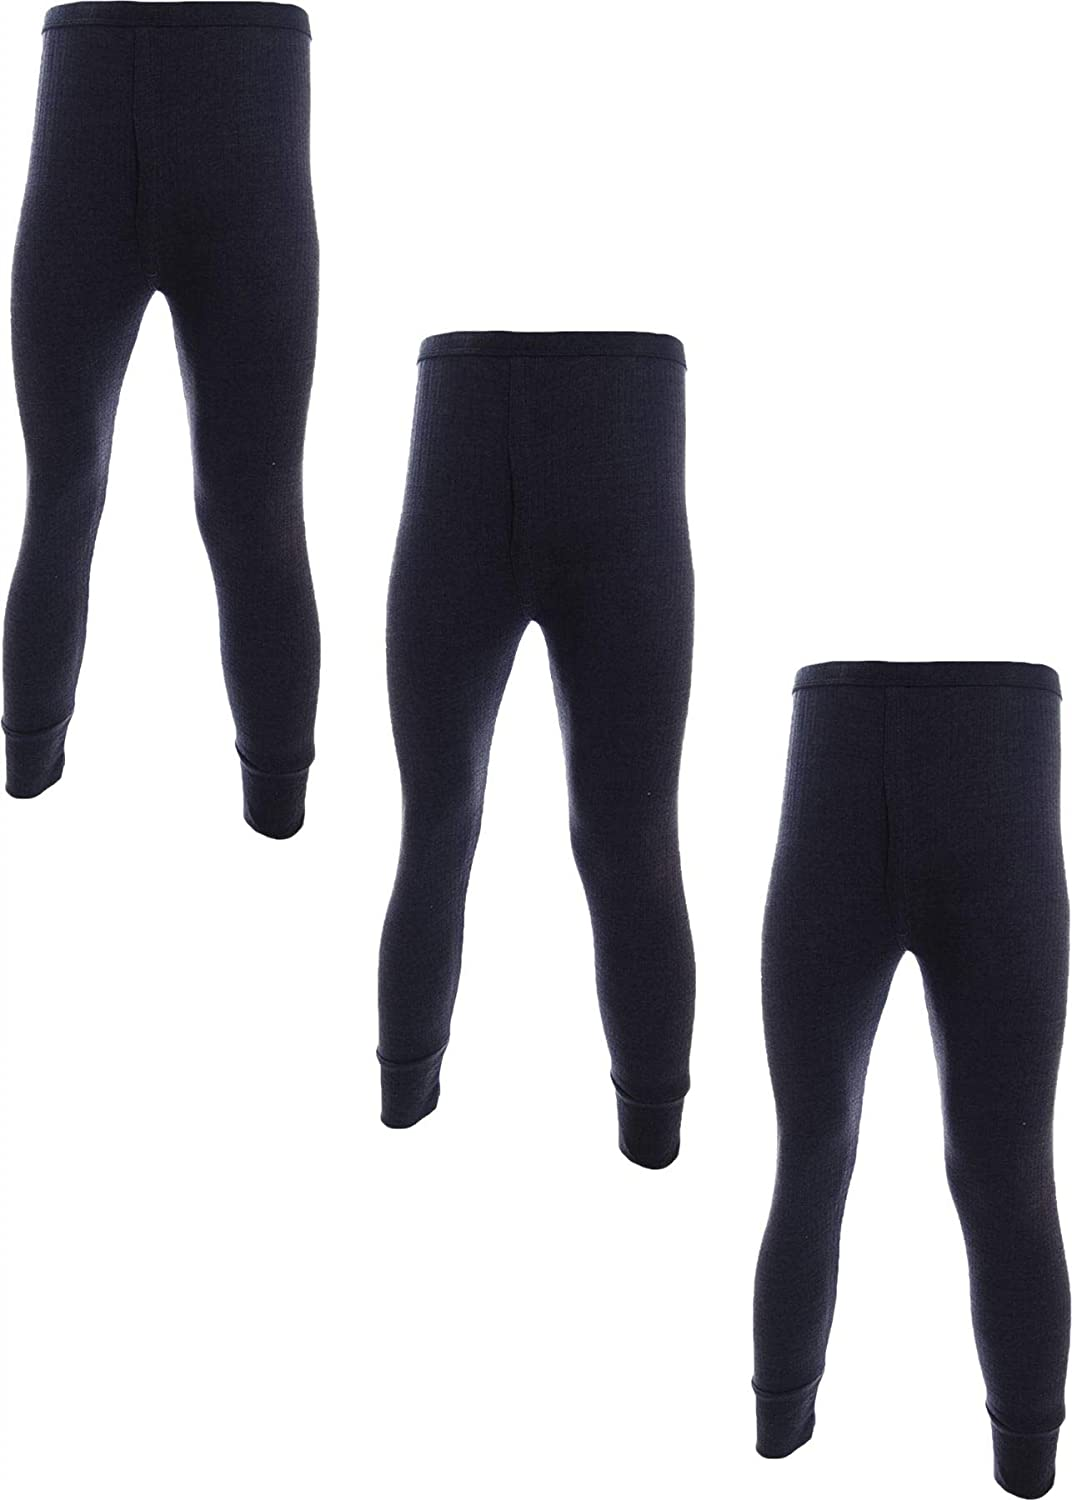 3 Pairs Mens Undercover Brushed Thermal Vests and Long Johns